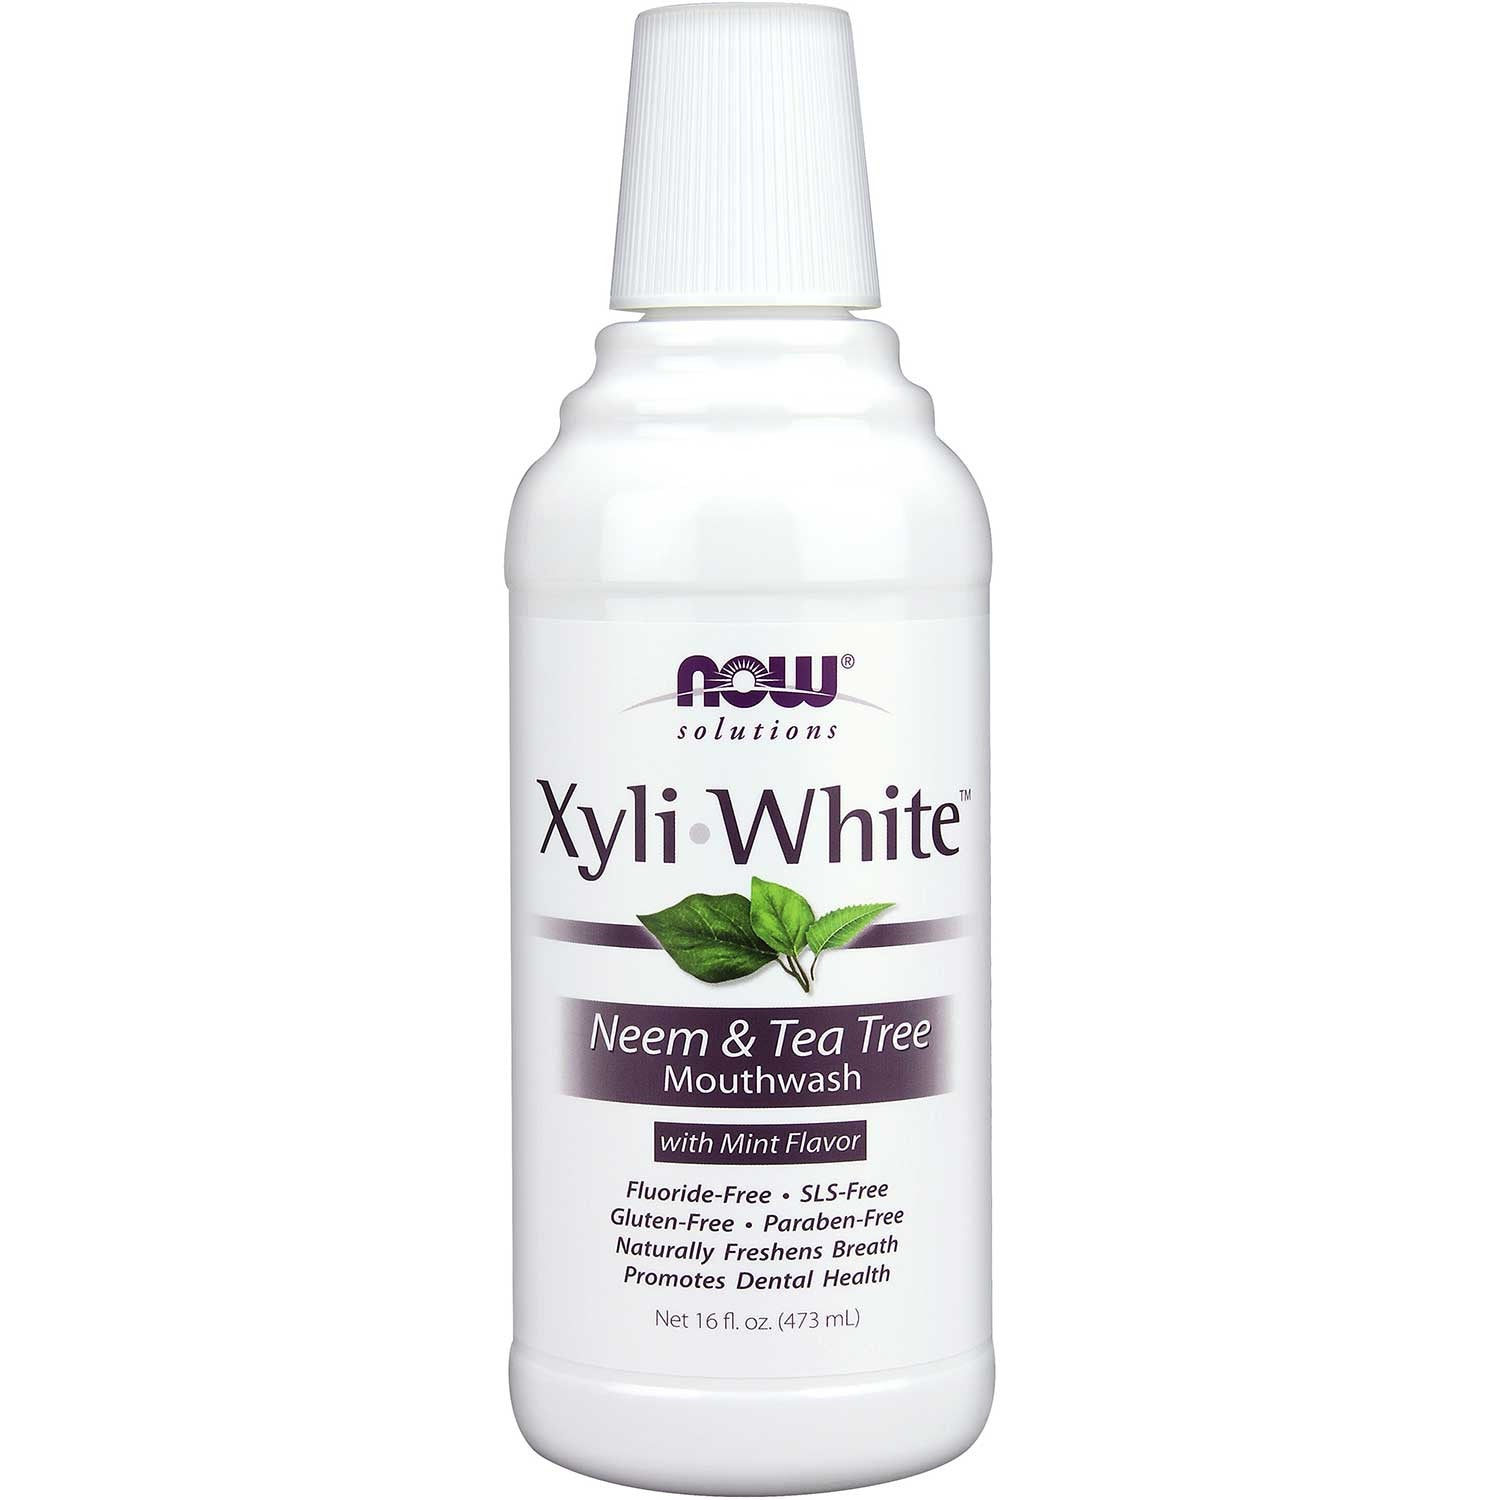 NOW XyliWhite Mouthwash - Neem & Tea Tree, 473 ml.